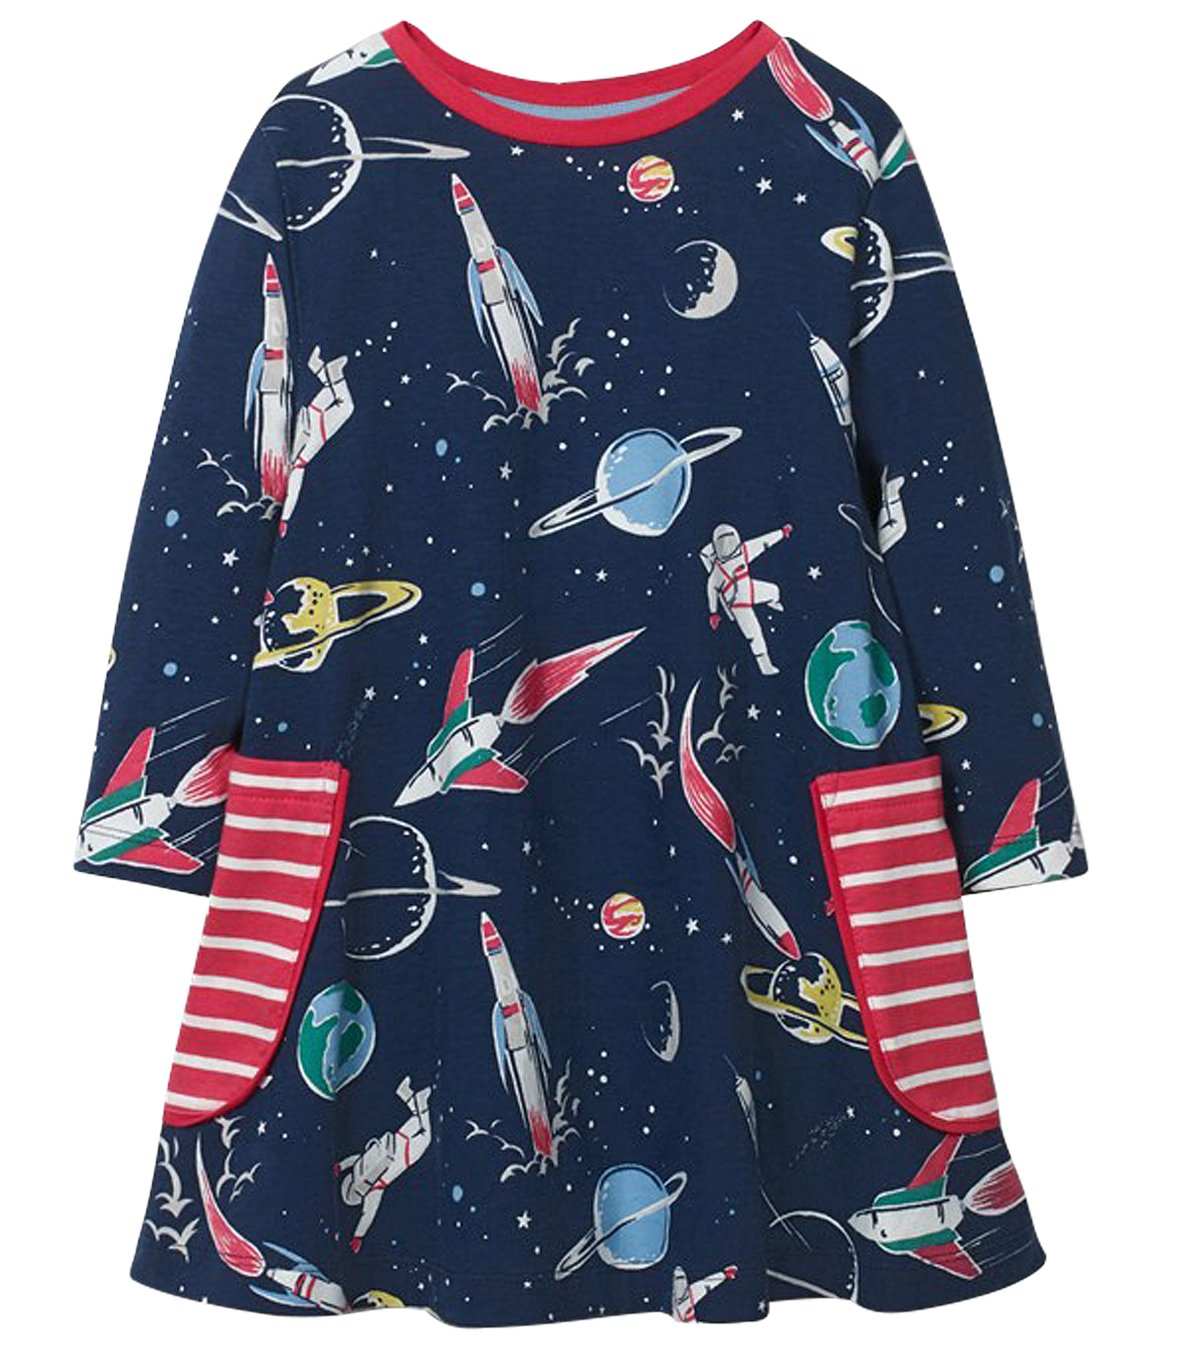 Fiream Girls Cotton Casual Longsleeve Cartoon Dresses (7T/7-8YRS, 7723)